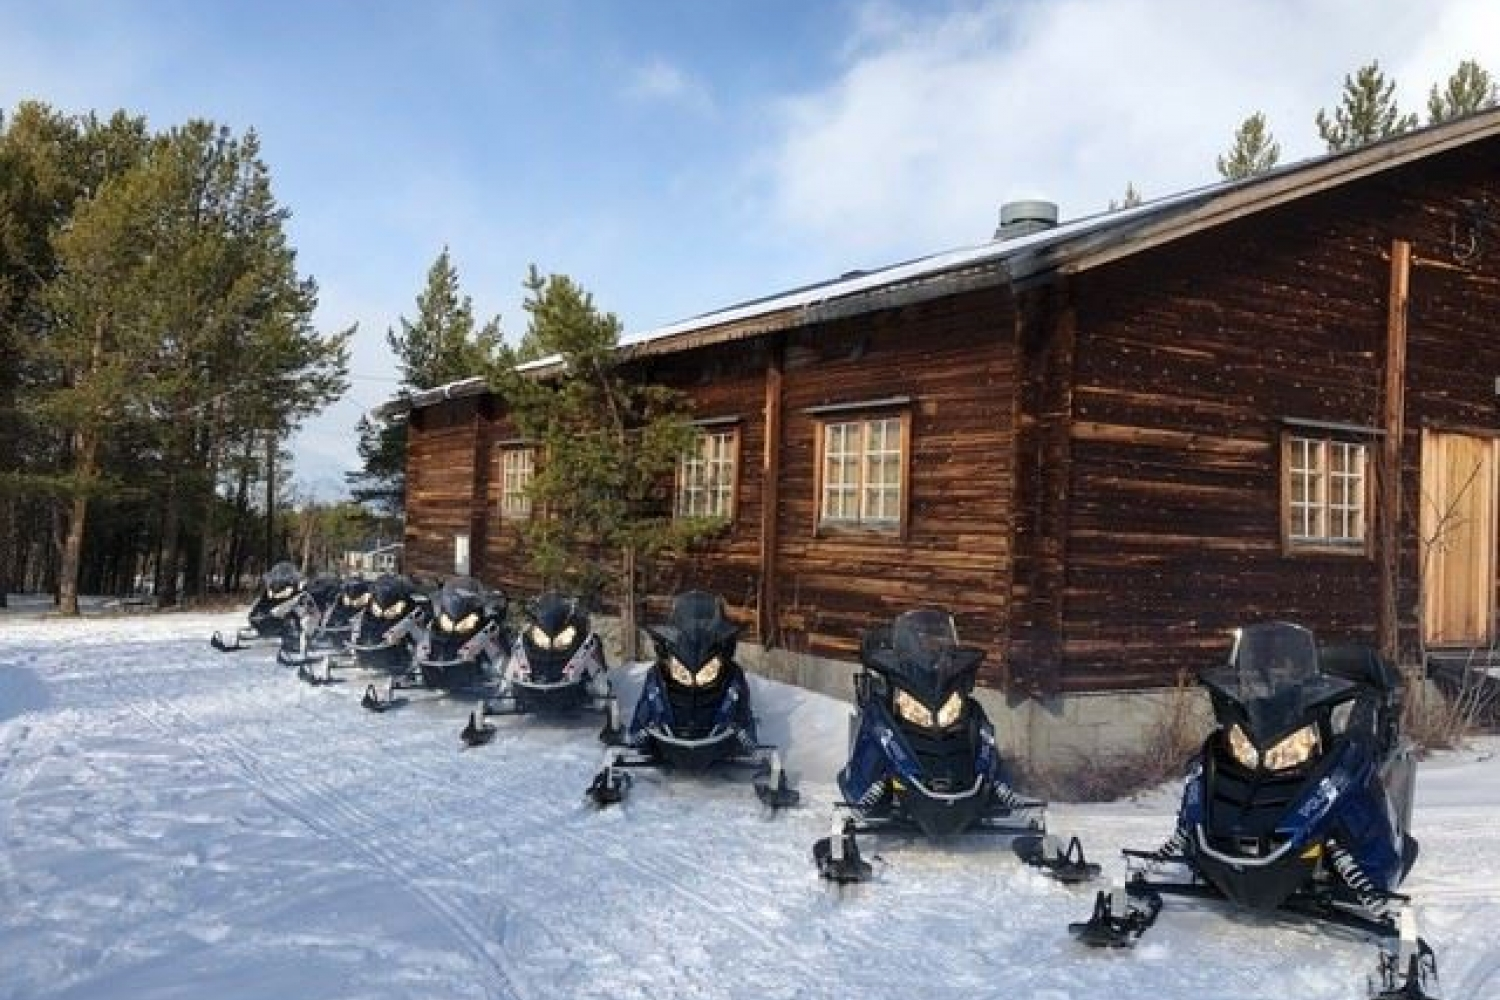 snowmobiles in front of a cabin